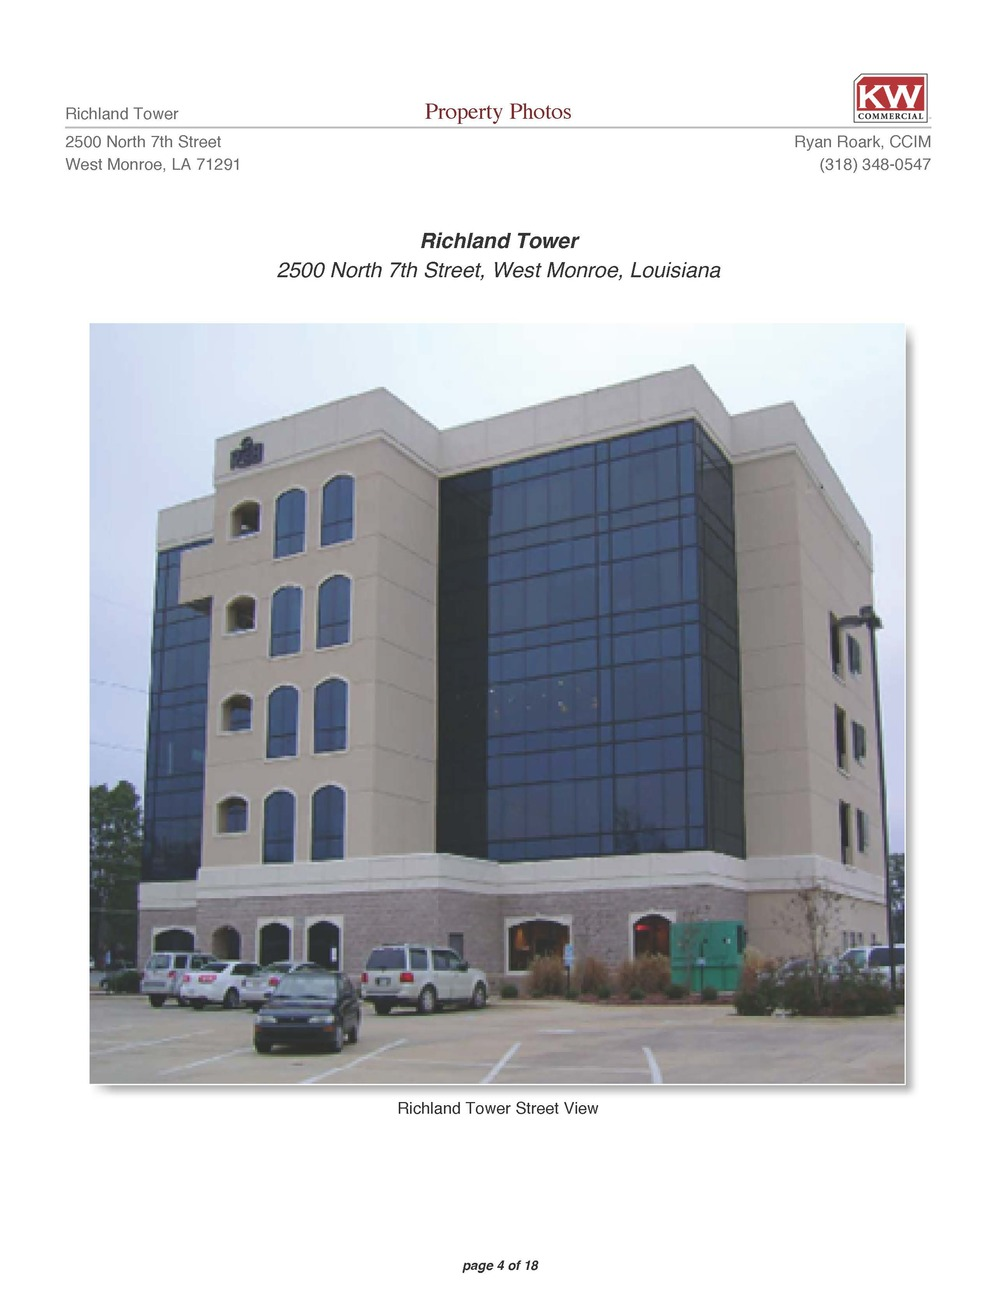 Richland Tower Office Building March 2011_Page_04.jpg